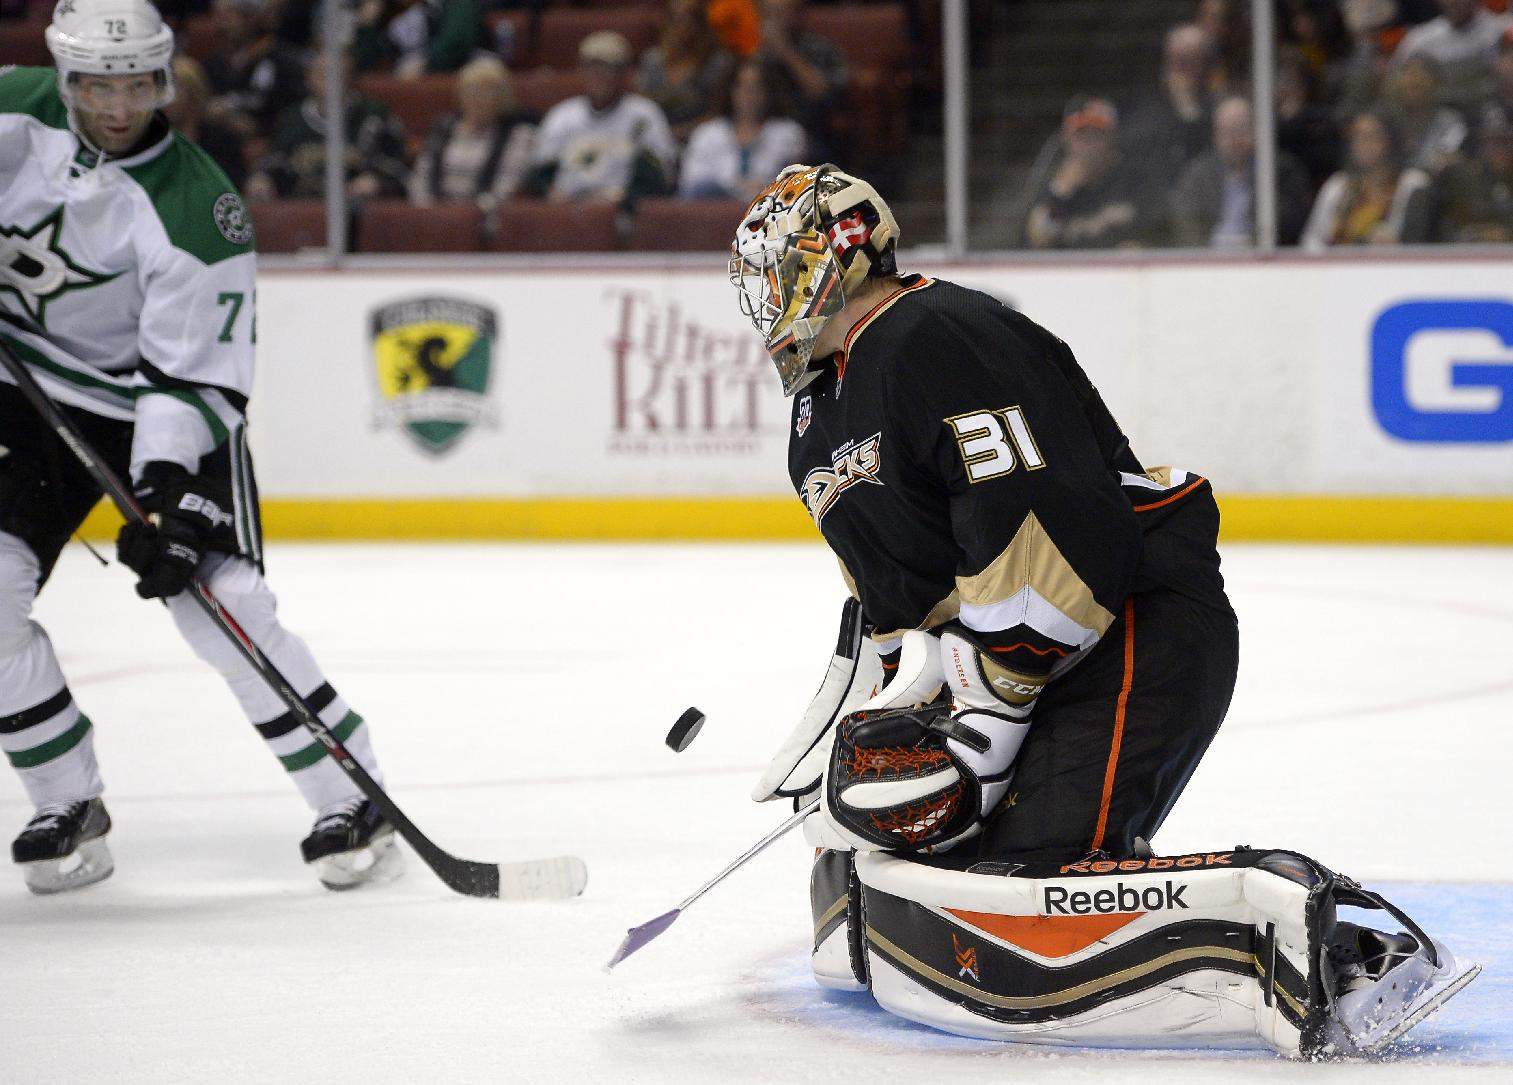 Anaheim Ducks goalie Frederik Andersen, right, stops a shot as Dallas Stars right wing Erik Cole looks on during the third period of their NHL hockey game, Sunday, Oct. 20, 2013, in Anaheim, Calif. The Ducks won 6-3